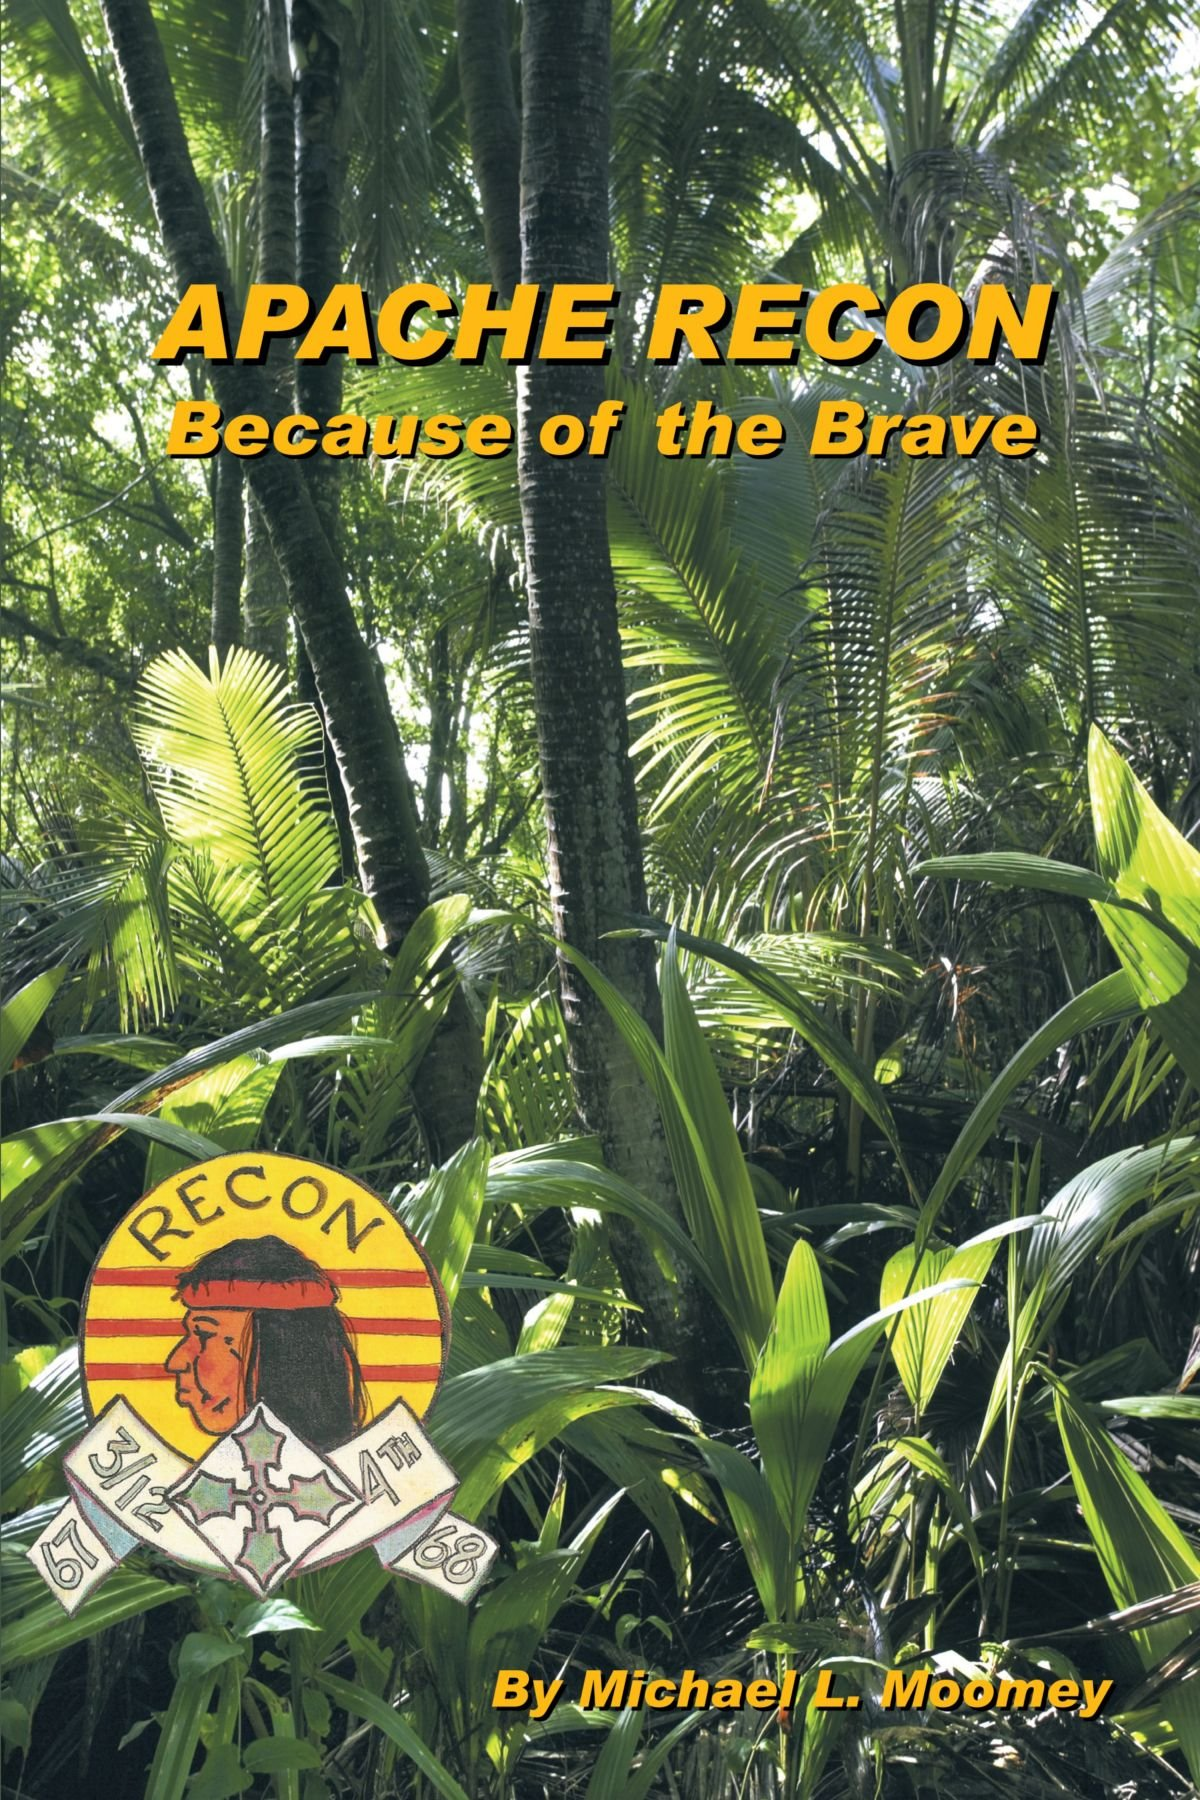 Download Apache Recon: Because of the Brave ePub fb2 ebook